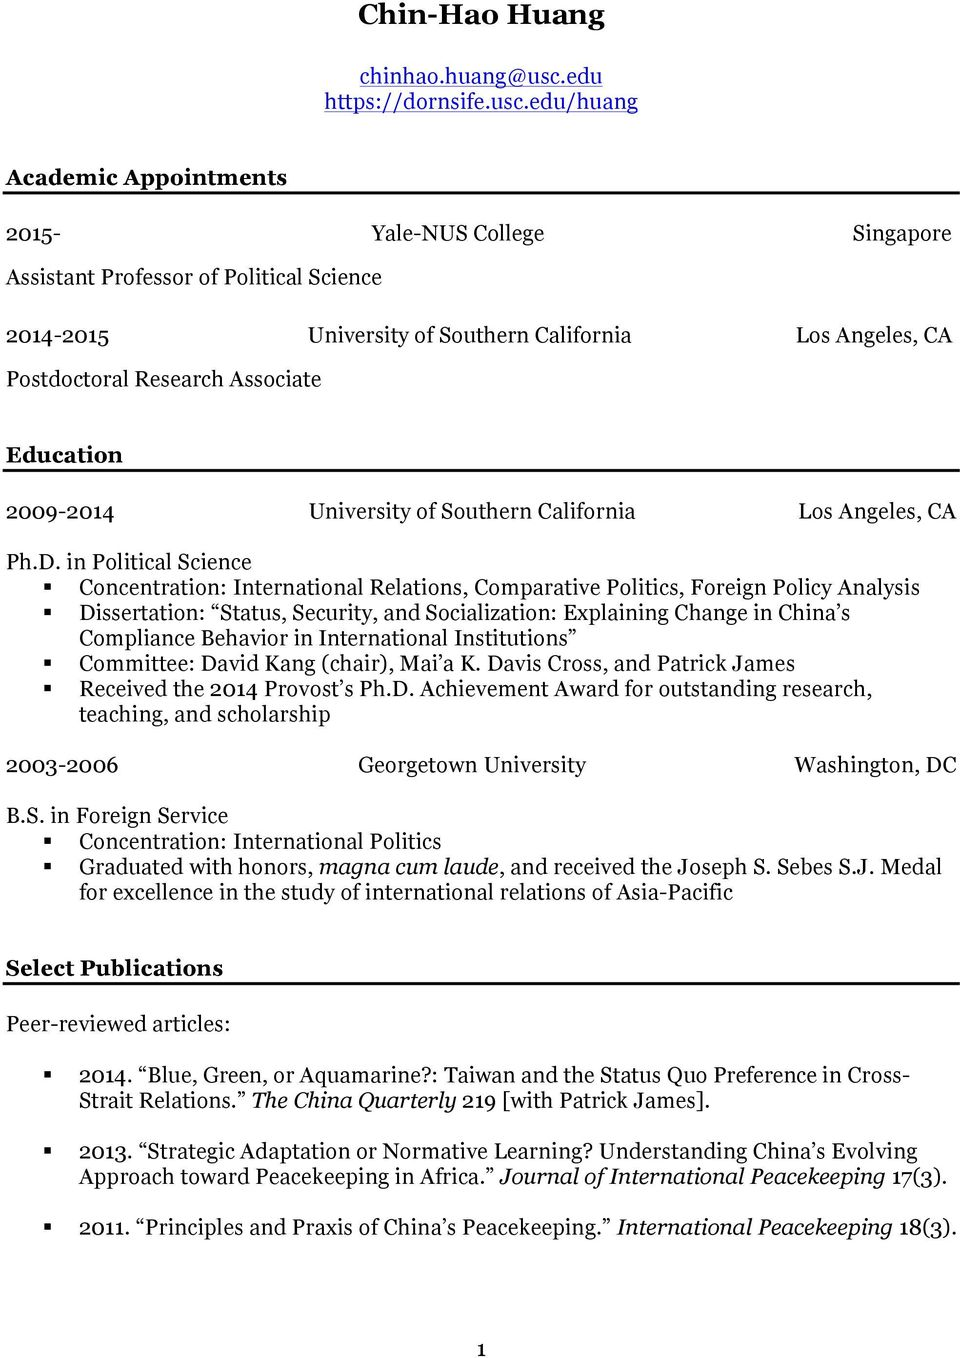 edu/huang Academic Appointments 2015- Yale-NUS College Singapore Assistant Professor of Political Science 2014-2015 University of Southern California Los Angeles, CA Postdoctoral Research Associate